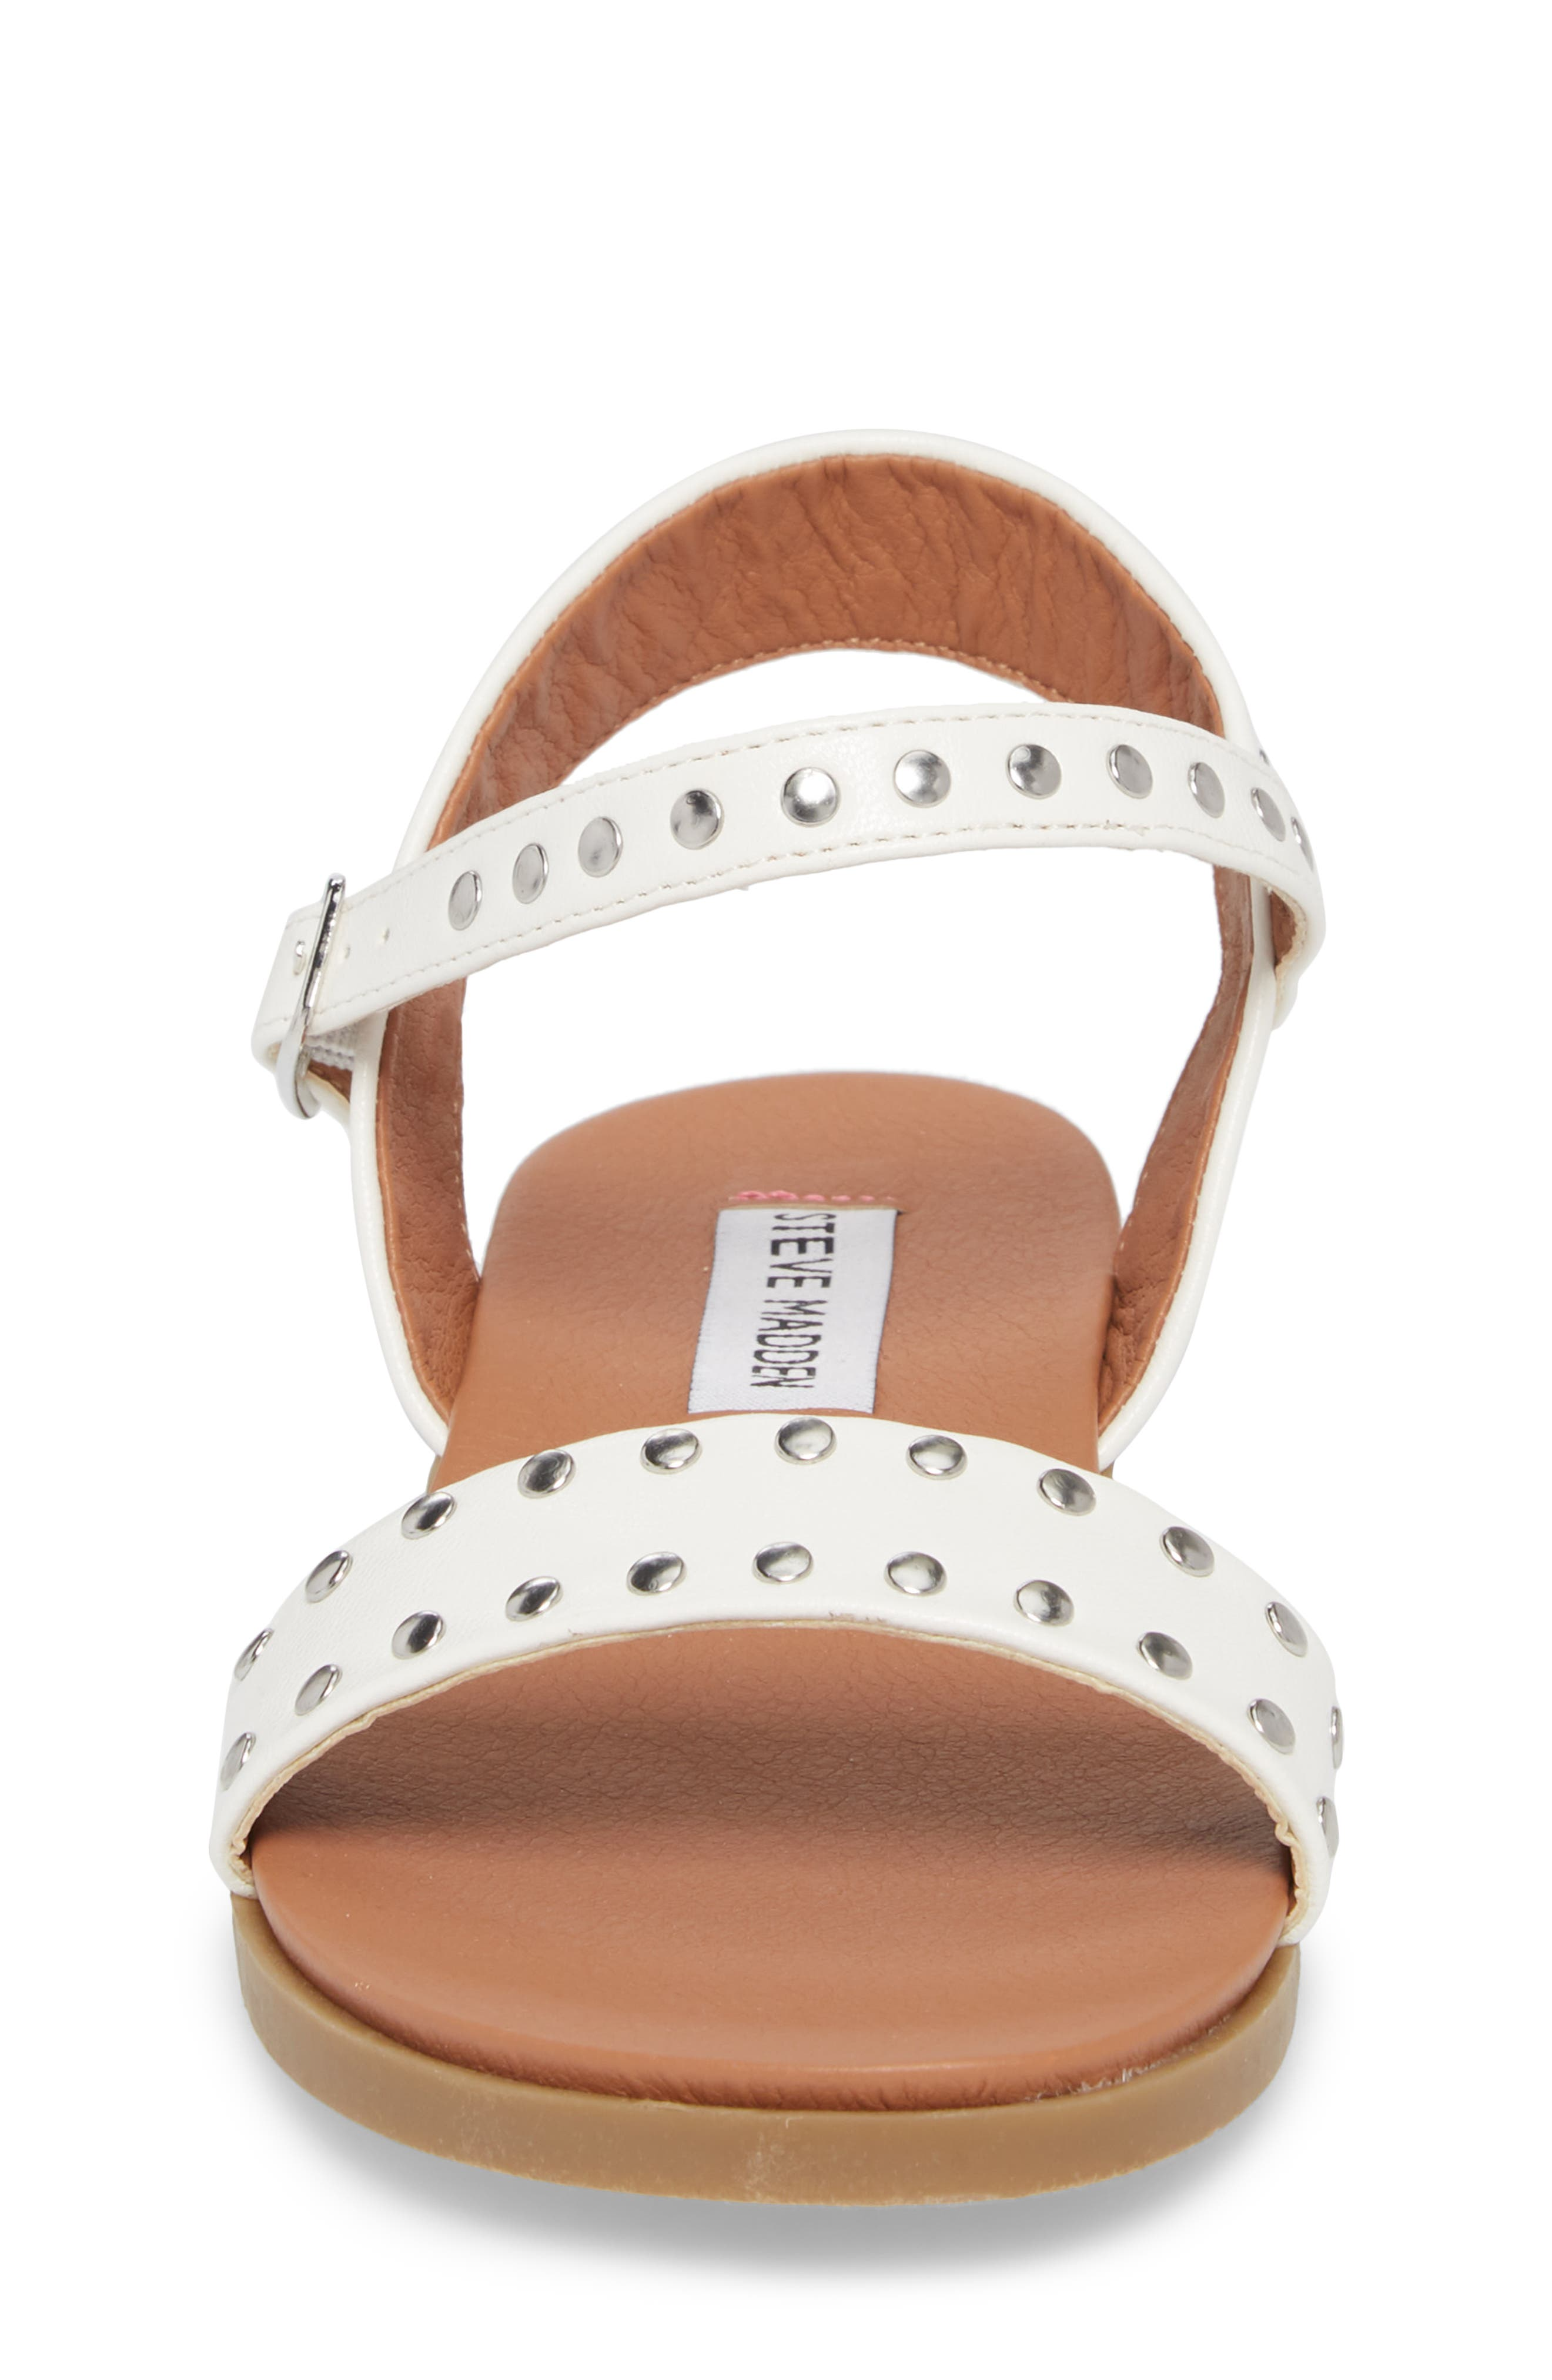 JDONDI Studded Sandal,                             Alternate thumbnail 4, color,                             WHITE